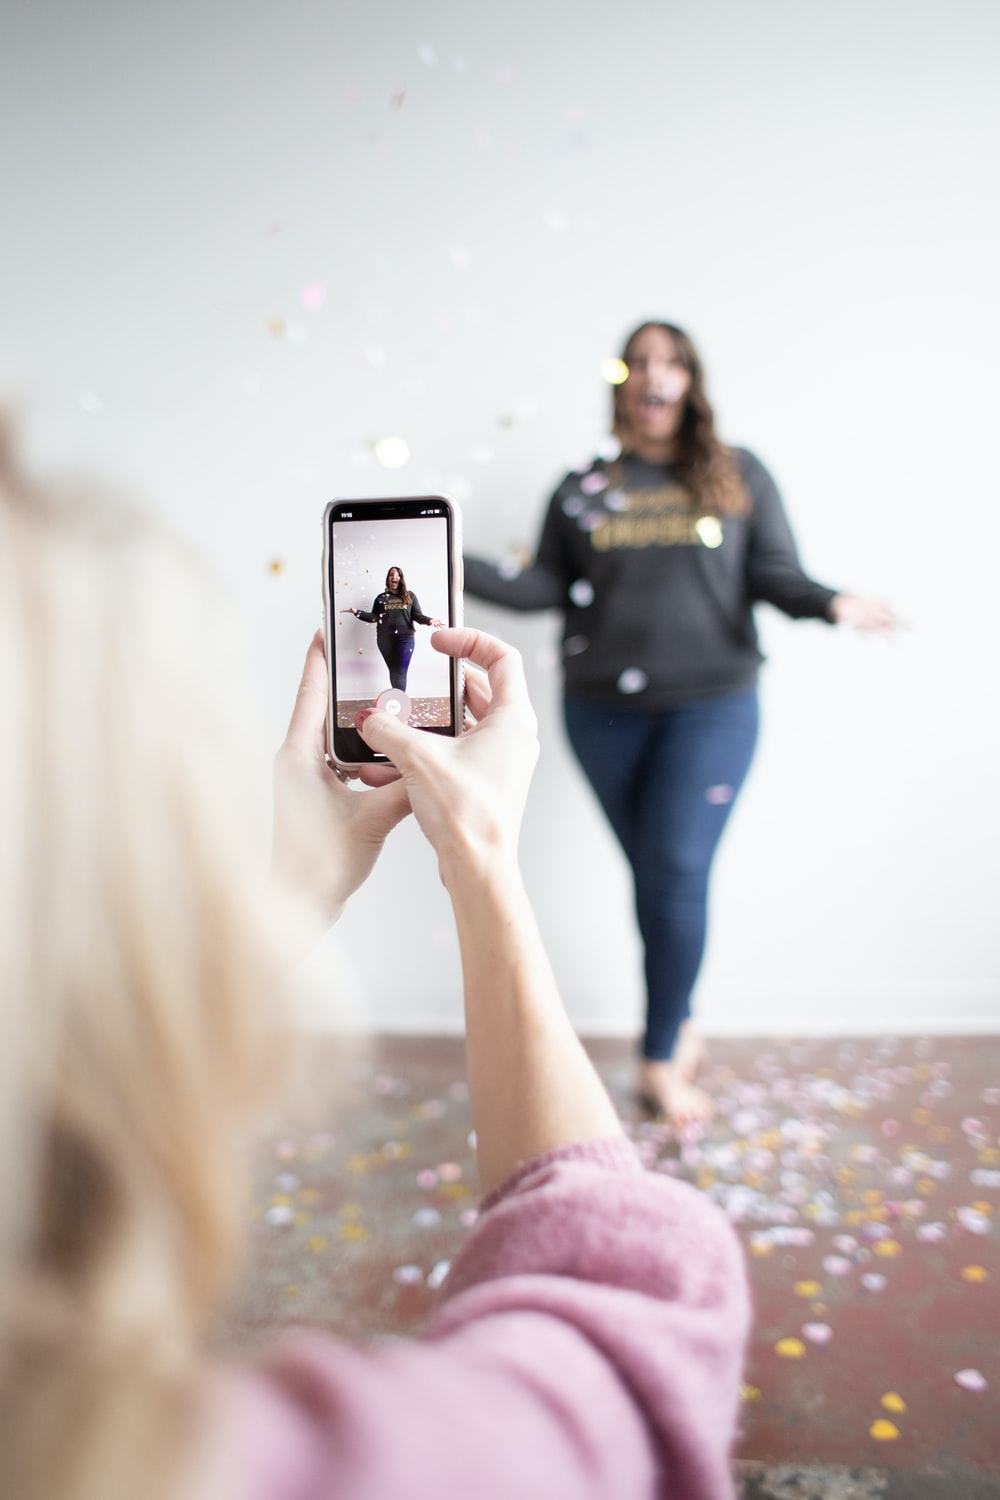 person holding white smartphone taking photo of woman wearing blue jeans